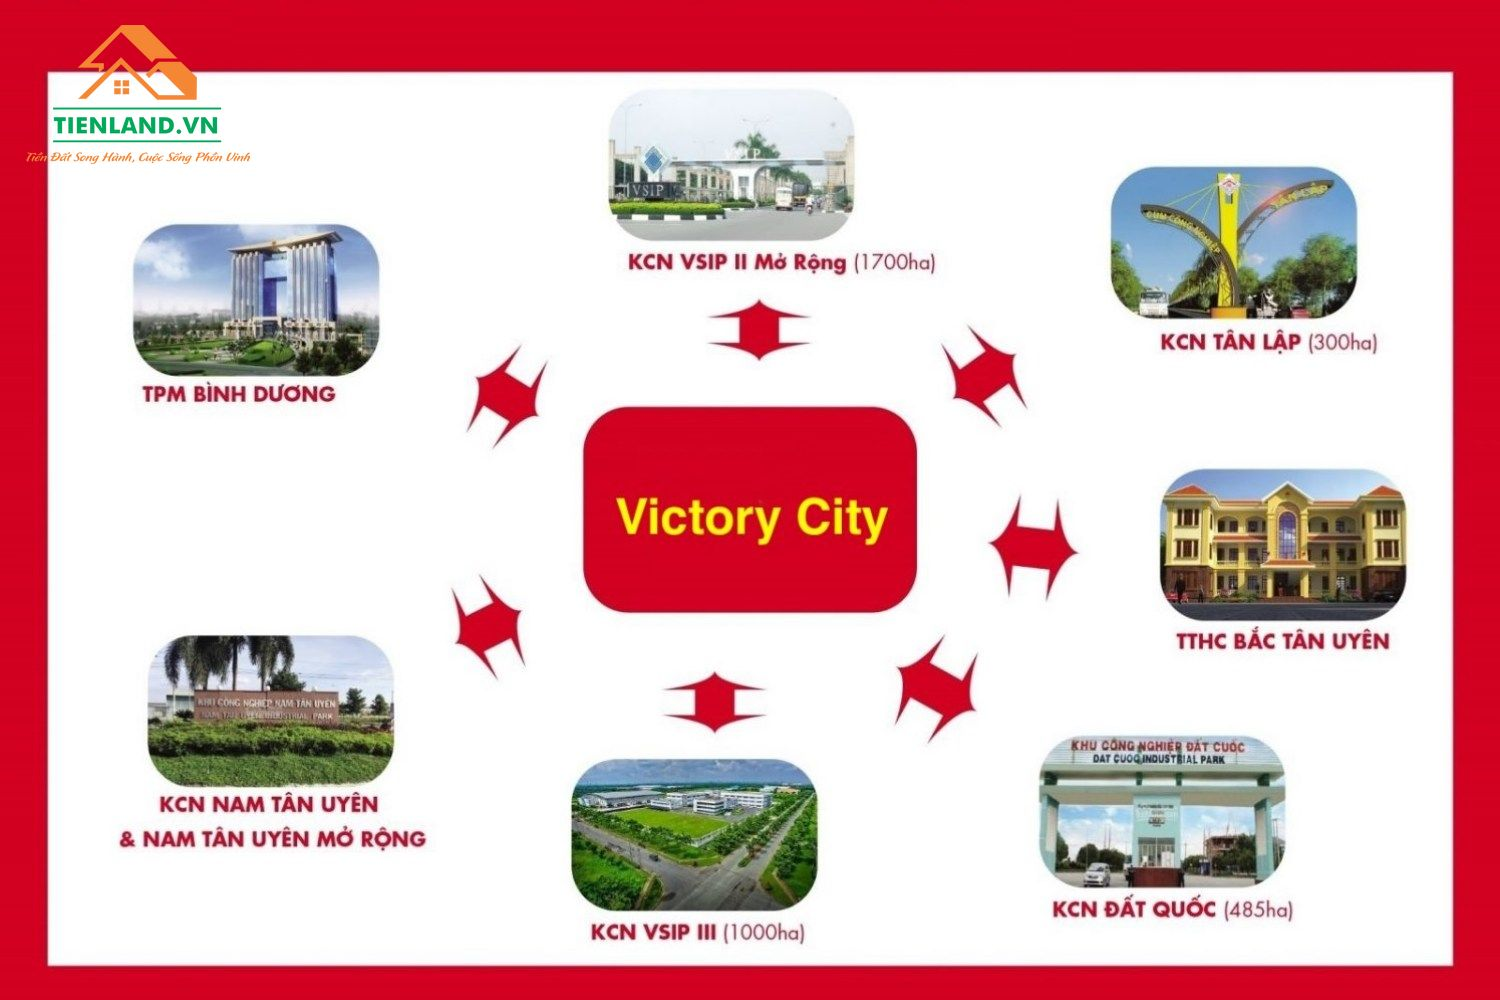 Victory City